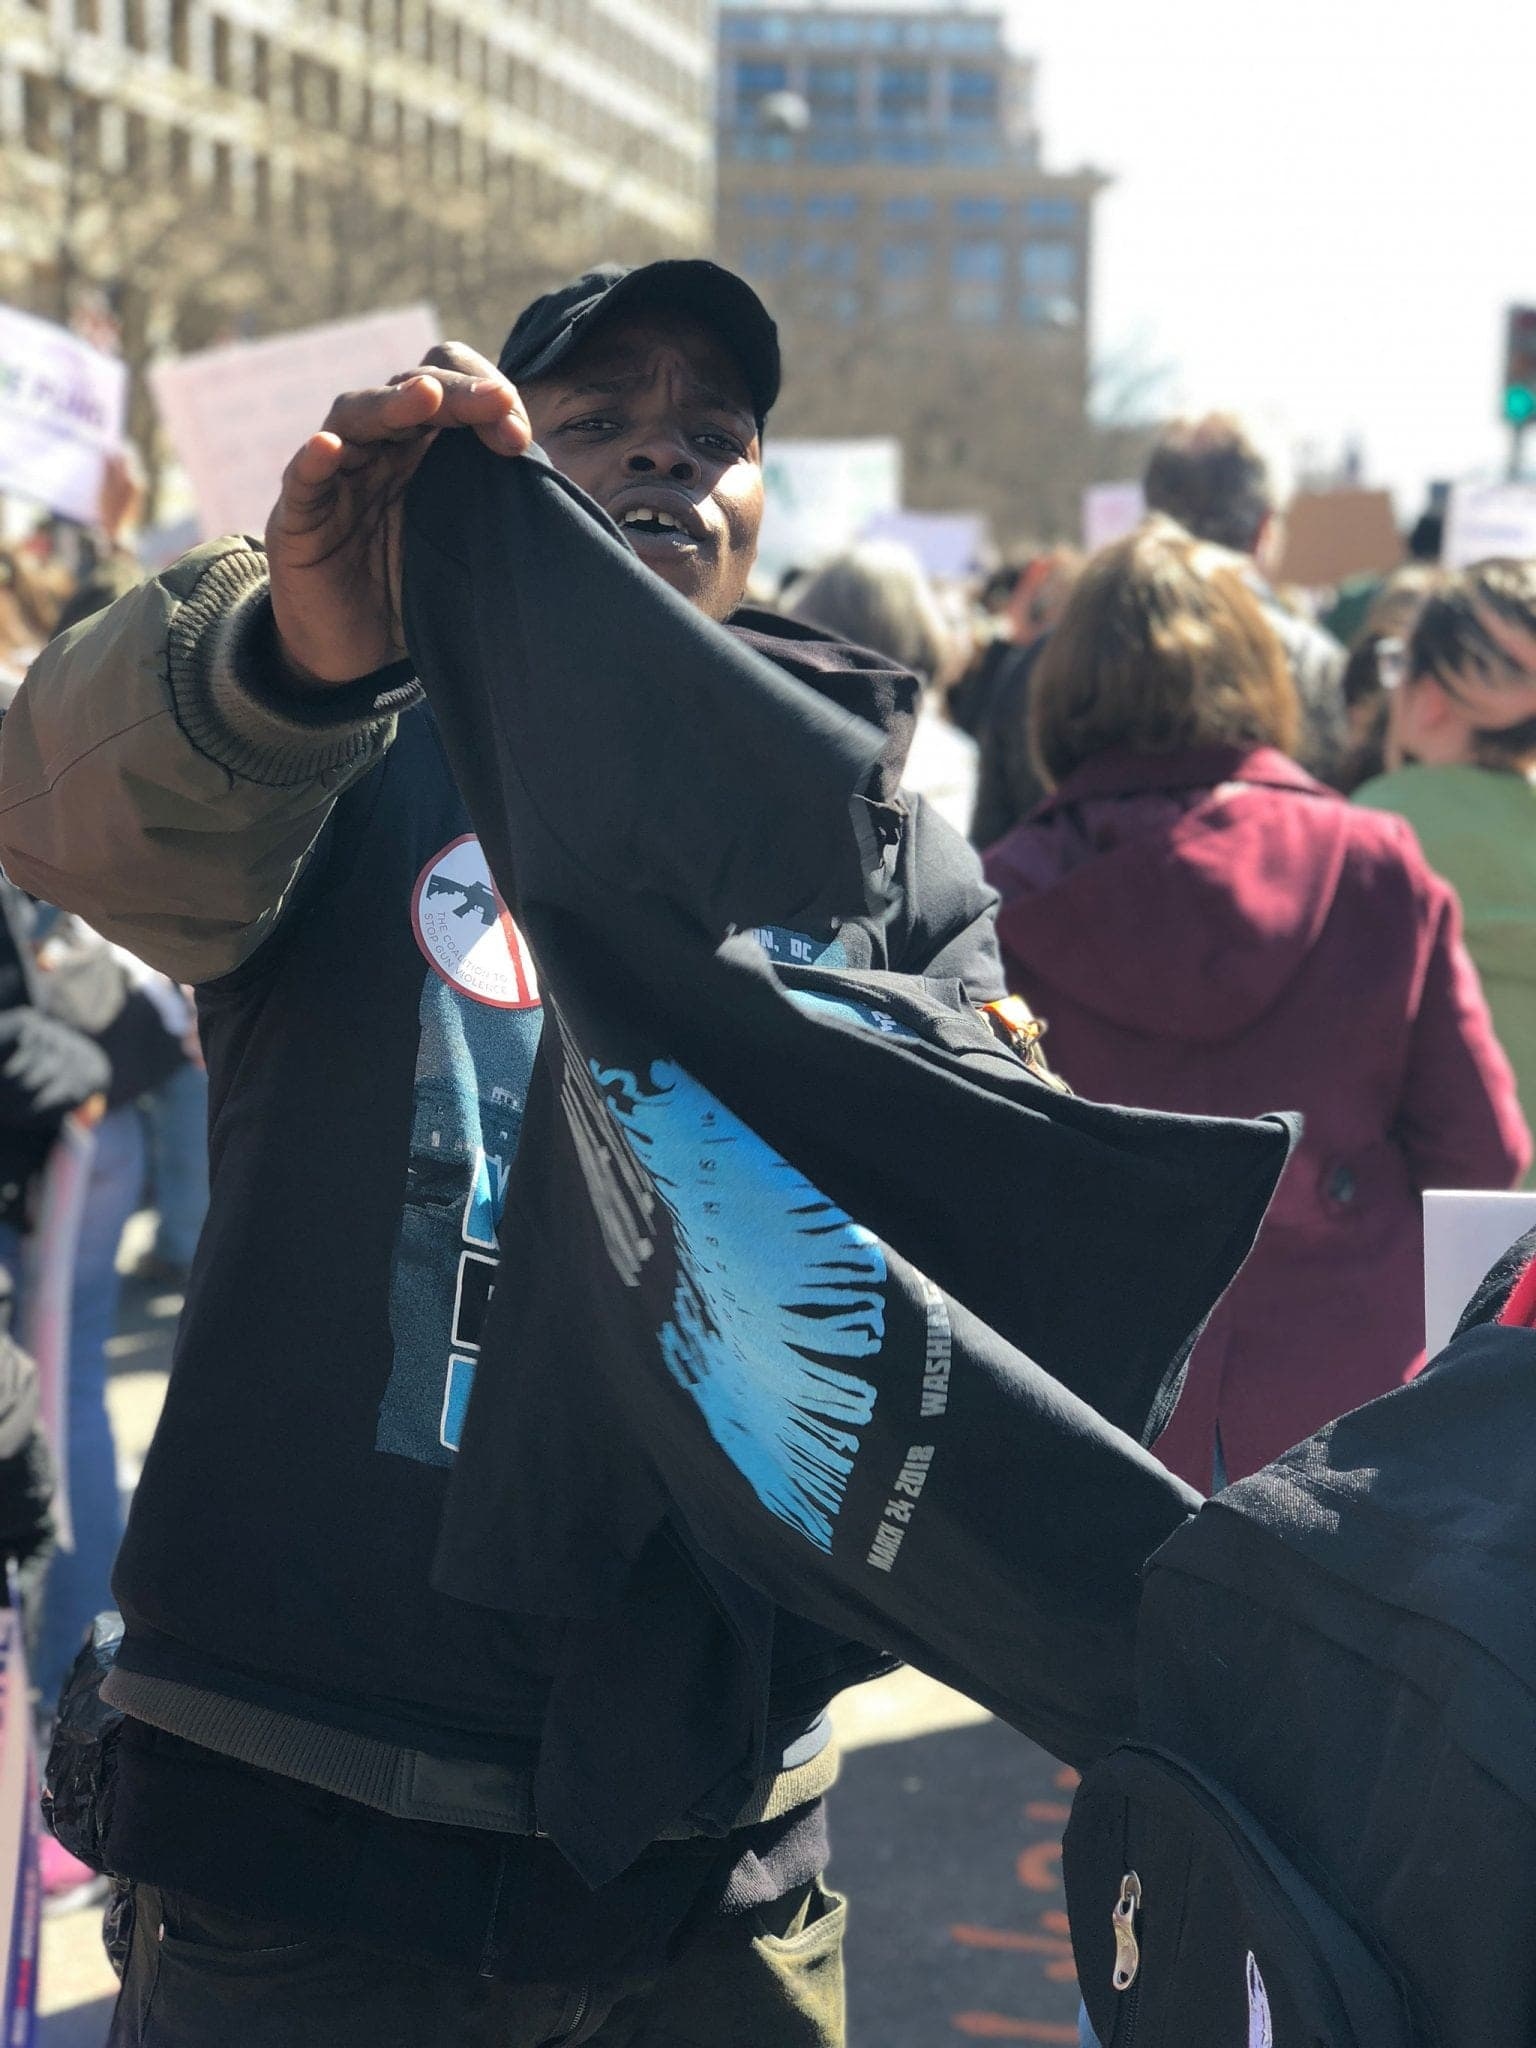 A vendor sells t-shirts during march